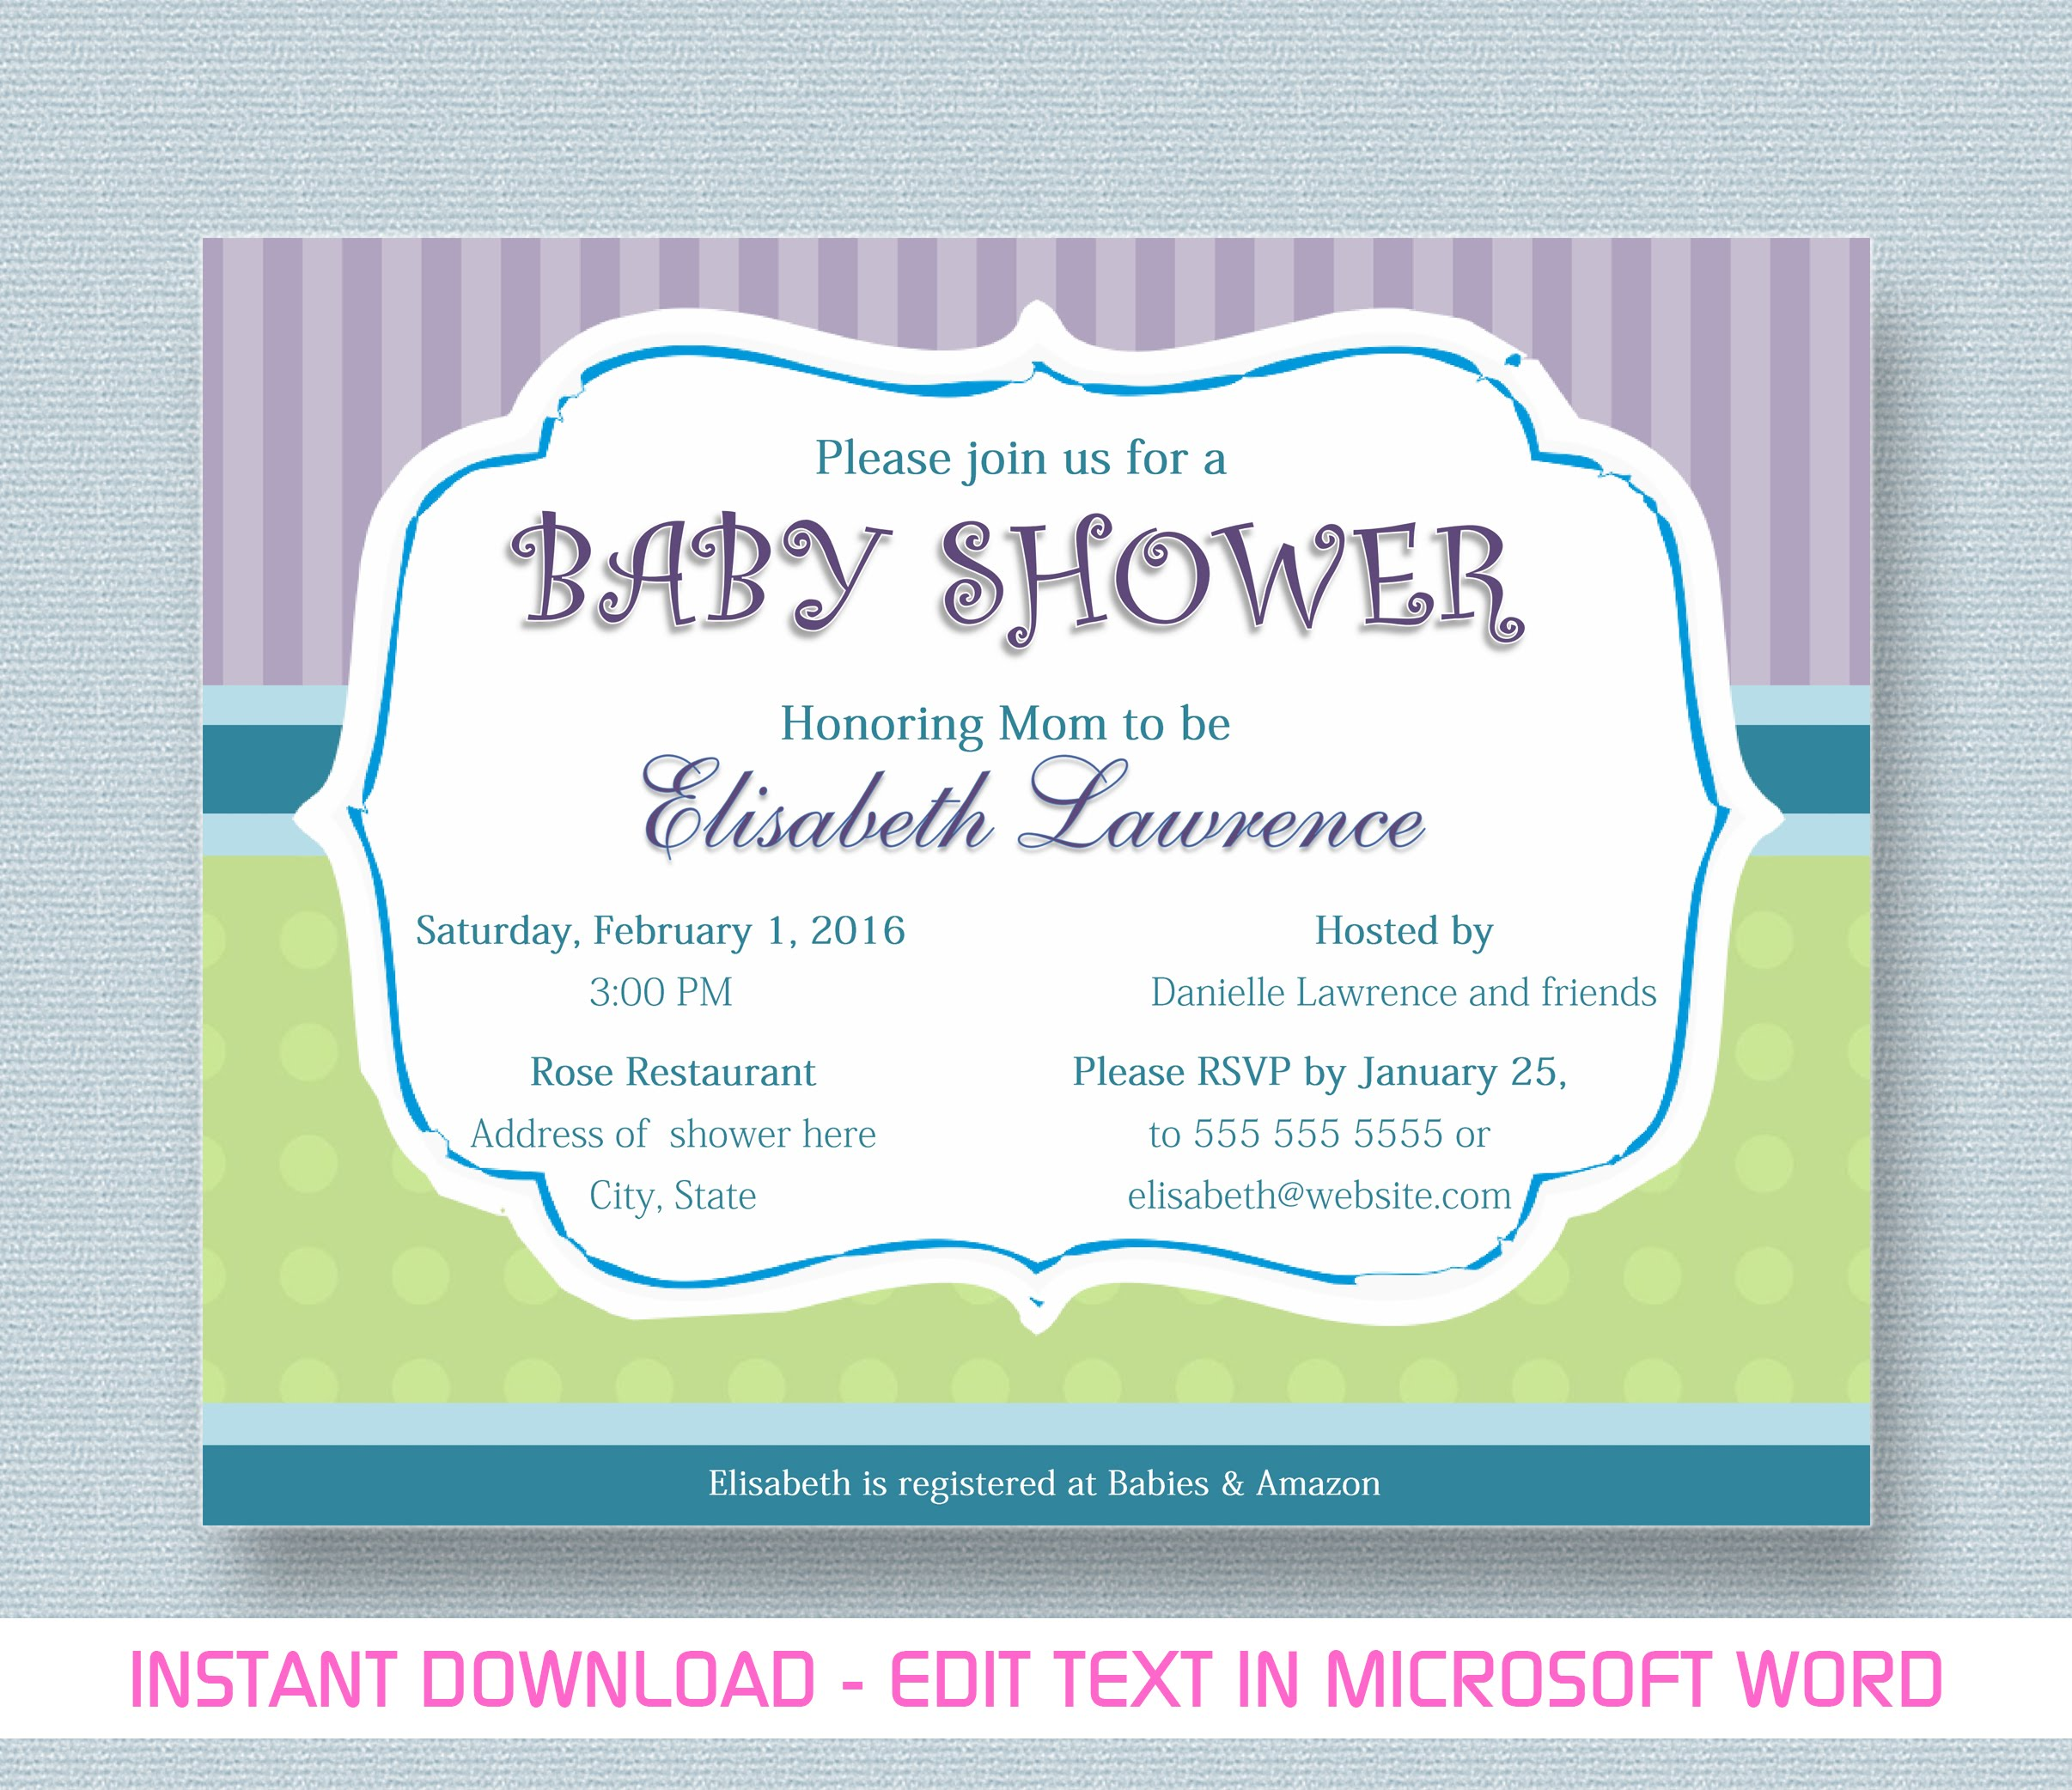 Full Size of Baby Shower:baby Shower Invitations For Boys Homemade Baby Shower Decorations Baby Shower Ideas Nursery Themes For Girls Baby Girl Party Plates Baby Girl Themes Elegant Baby Shower Decorations Baby Girl Themes For Baby Shower